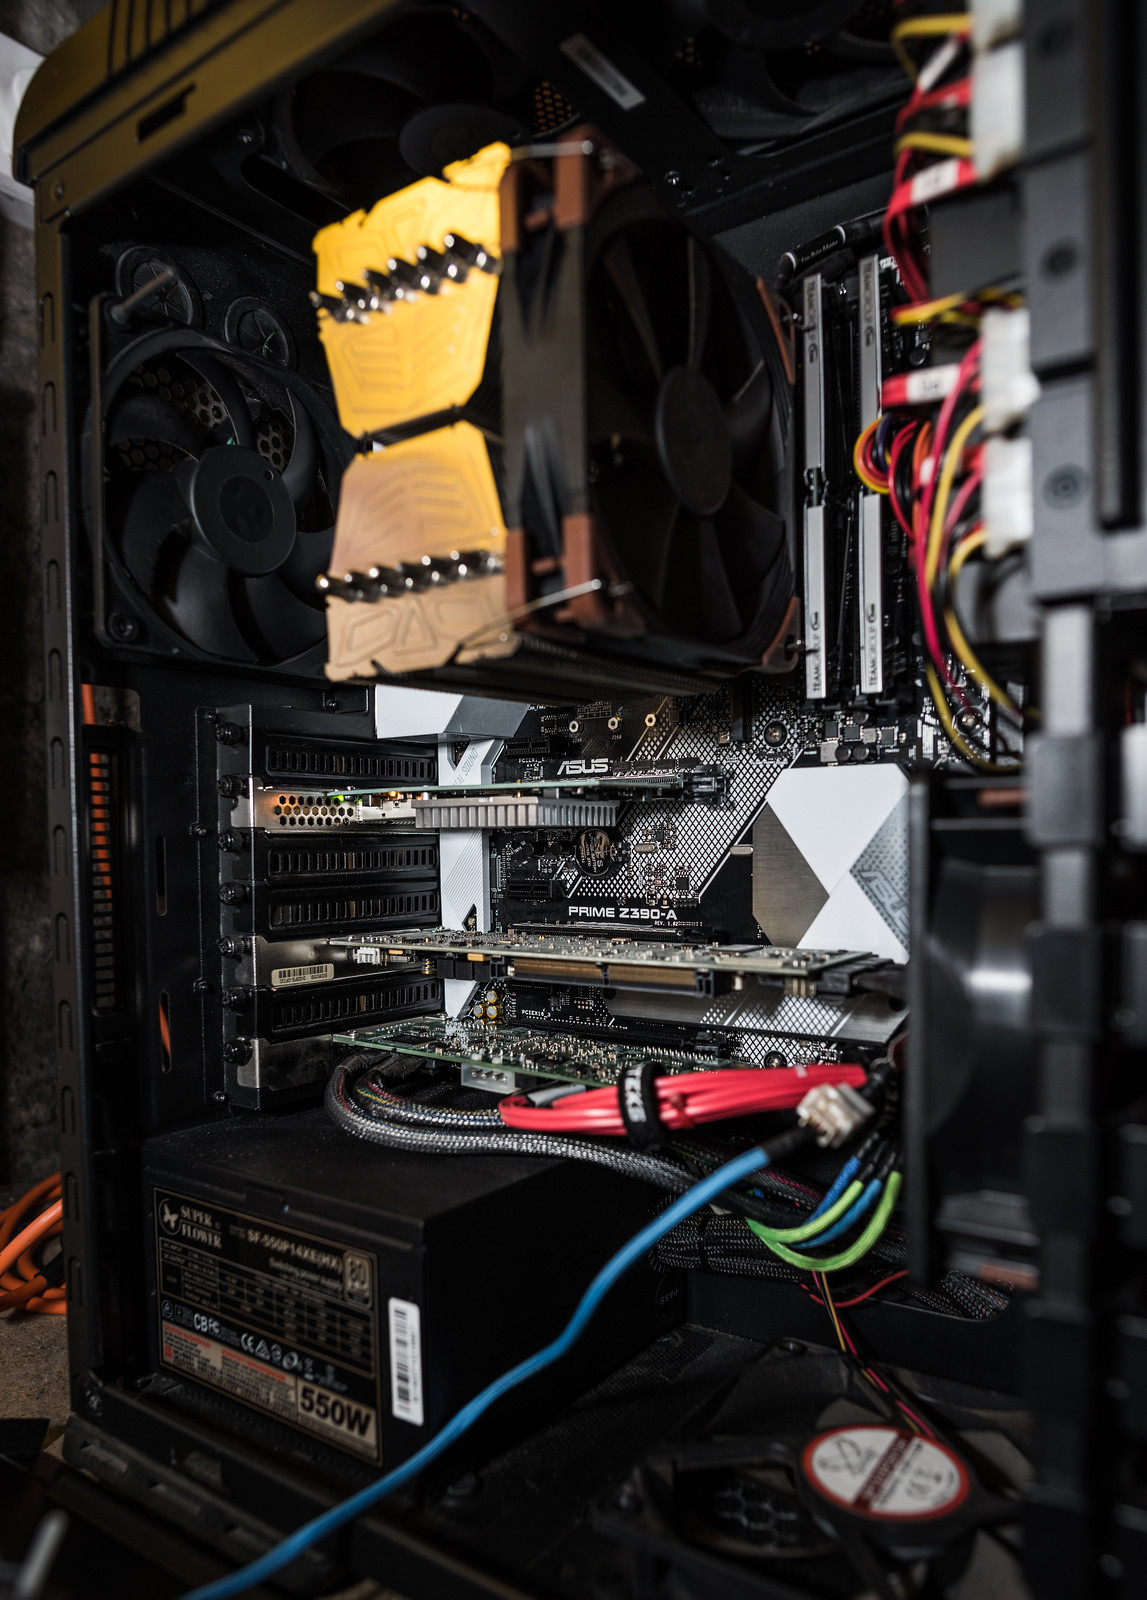 Storage server going 10Gbe | Page 4 | Overclockers UK Forums